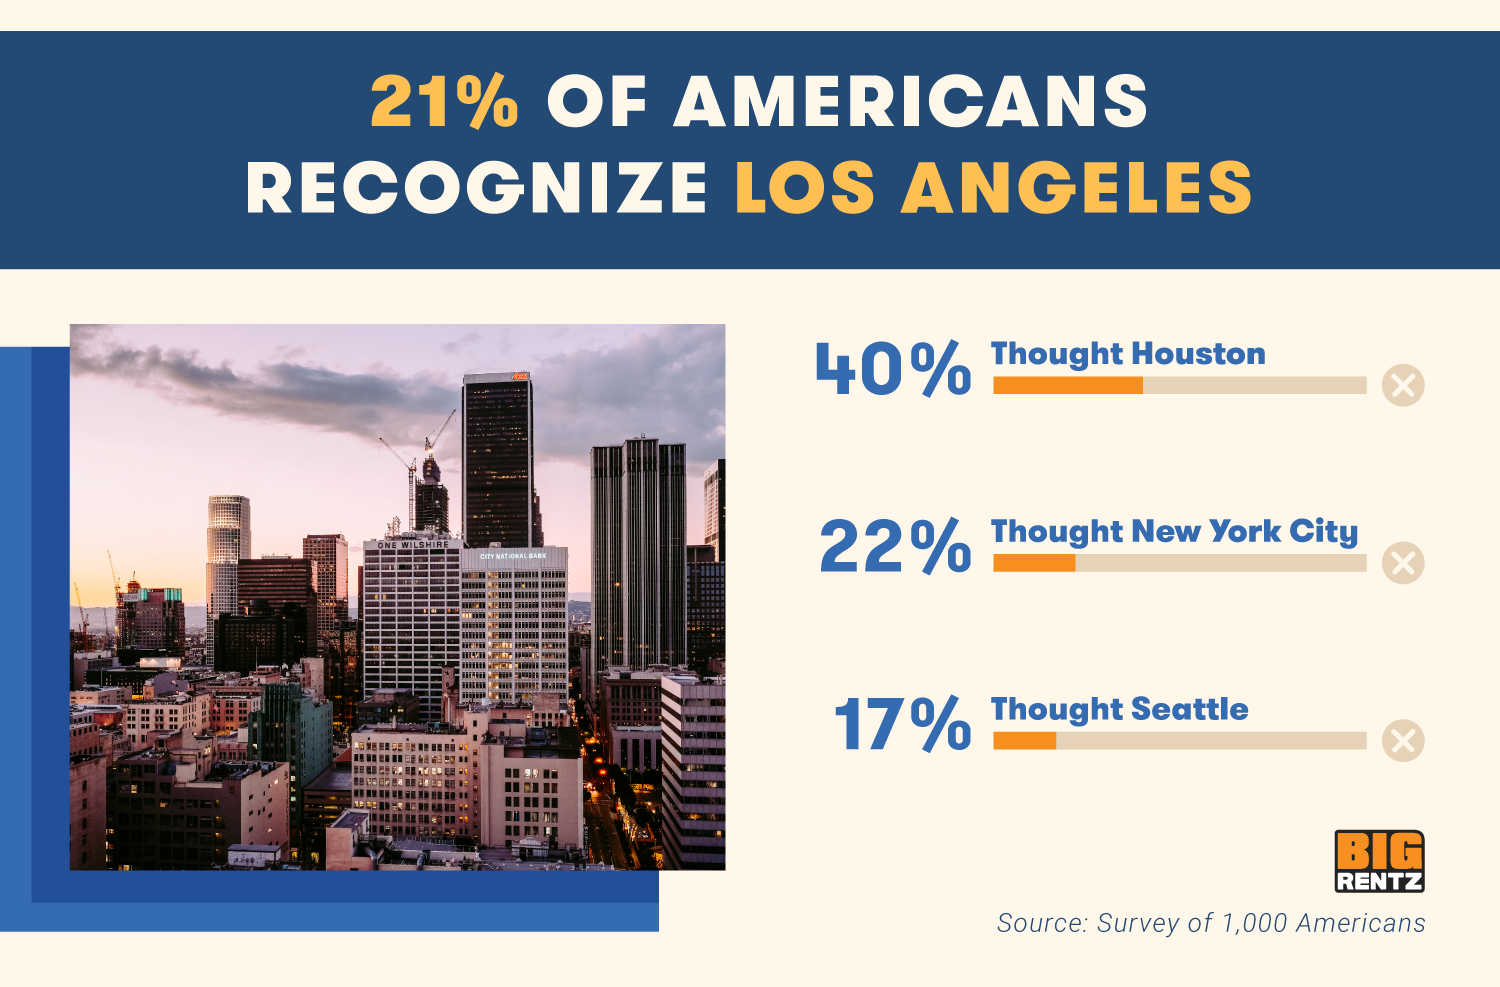 21% of Americans recognize Los Angeles. 40% thought Houston, 22% thought NYC, and 17% thought Seattle.